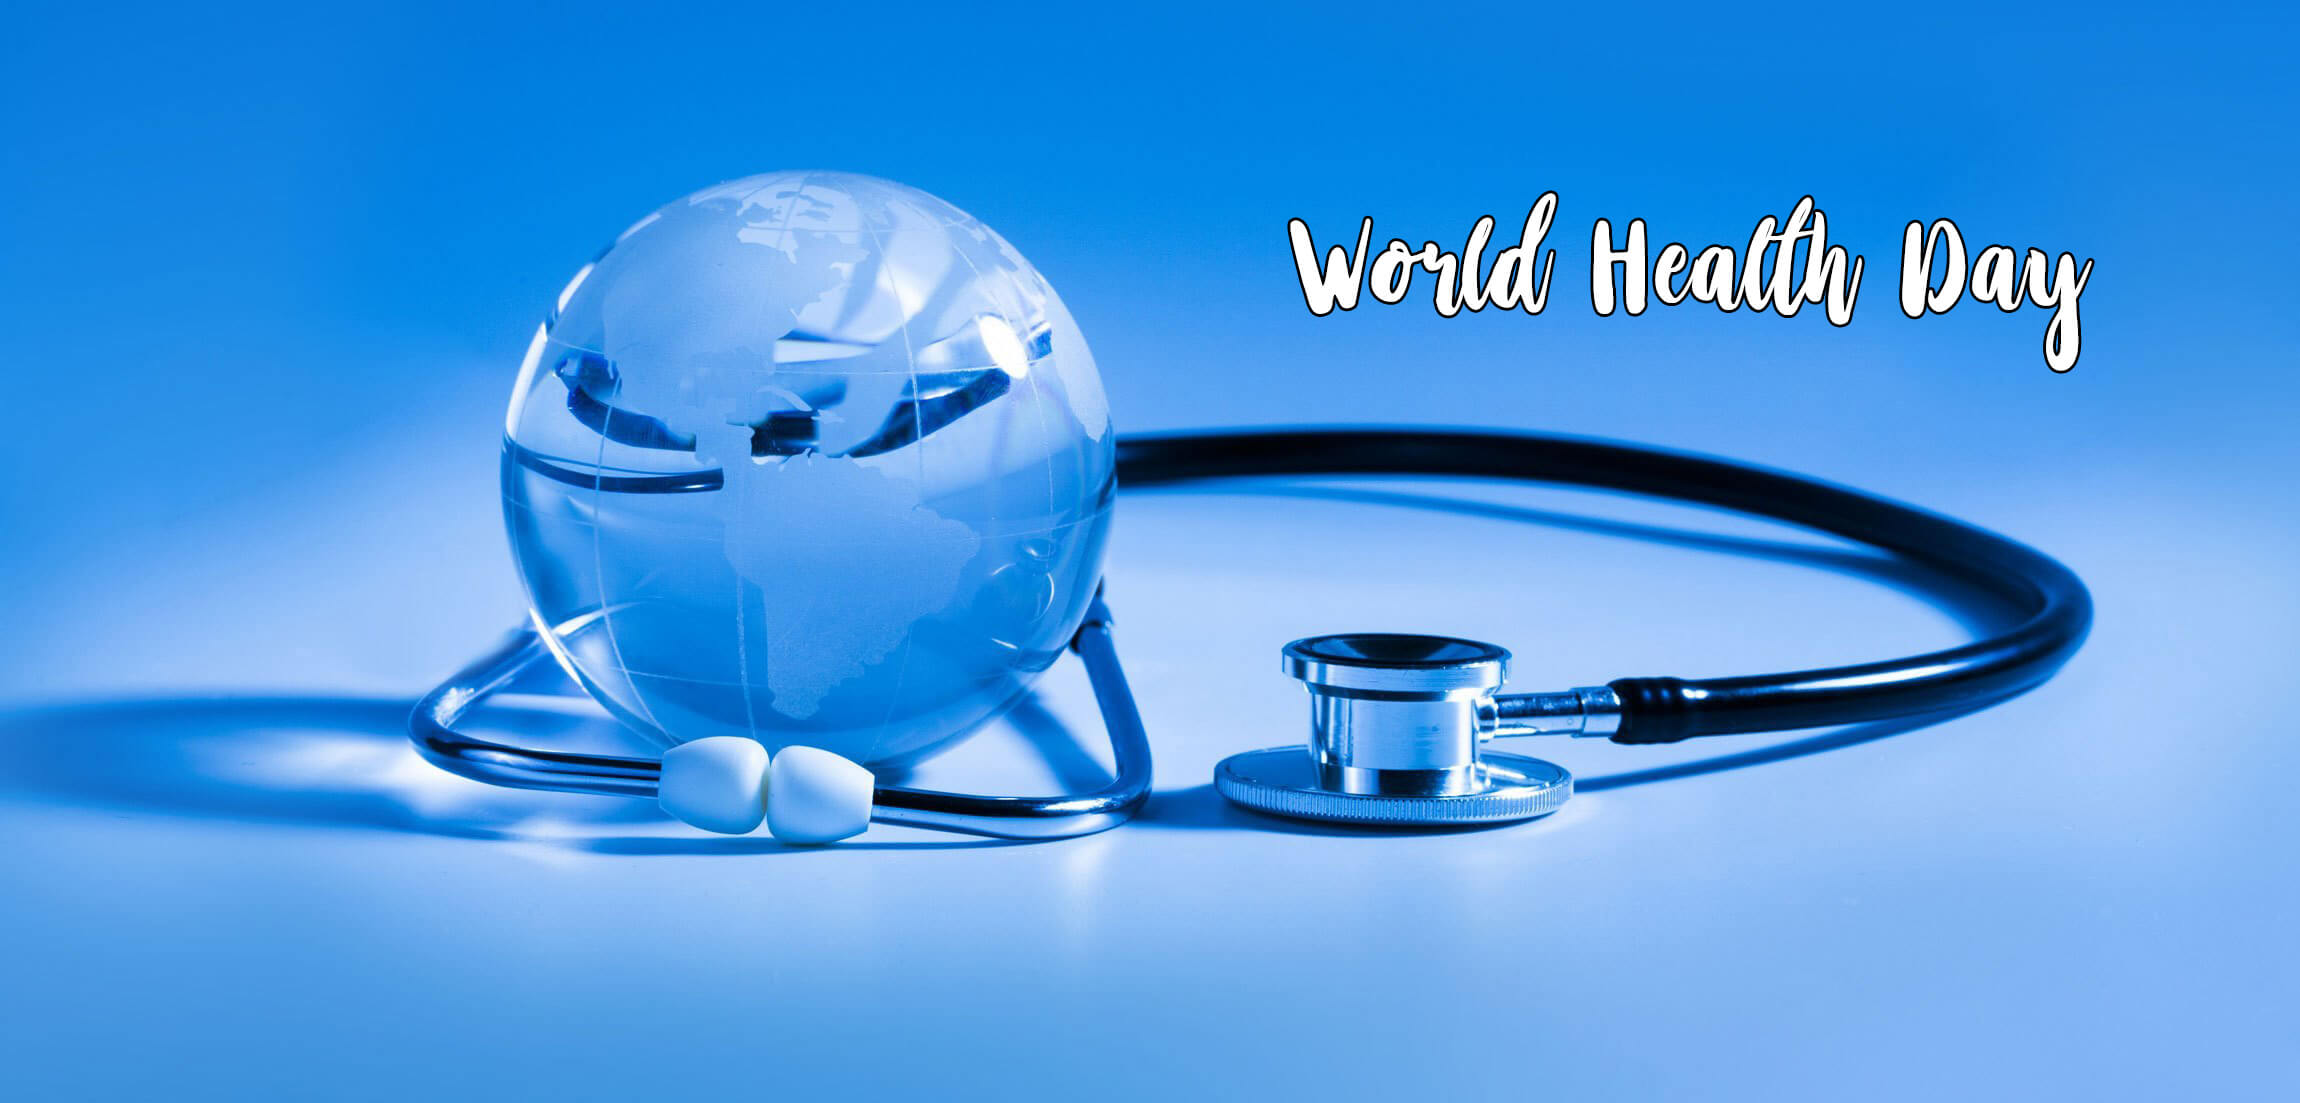 happy world health day globe crystal stethoscope wide hd wallpaper